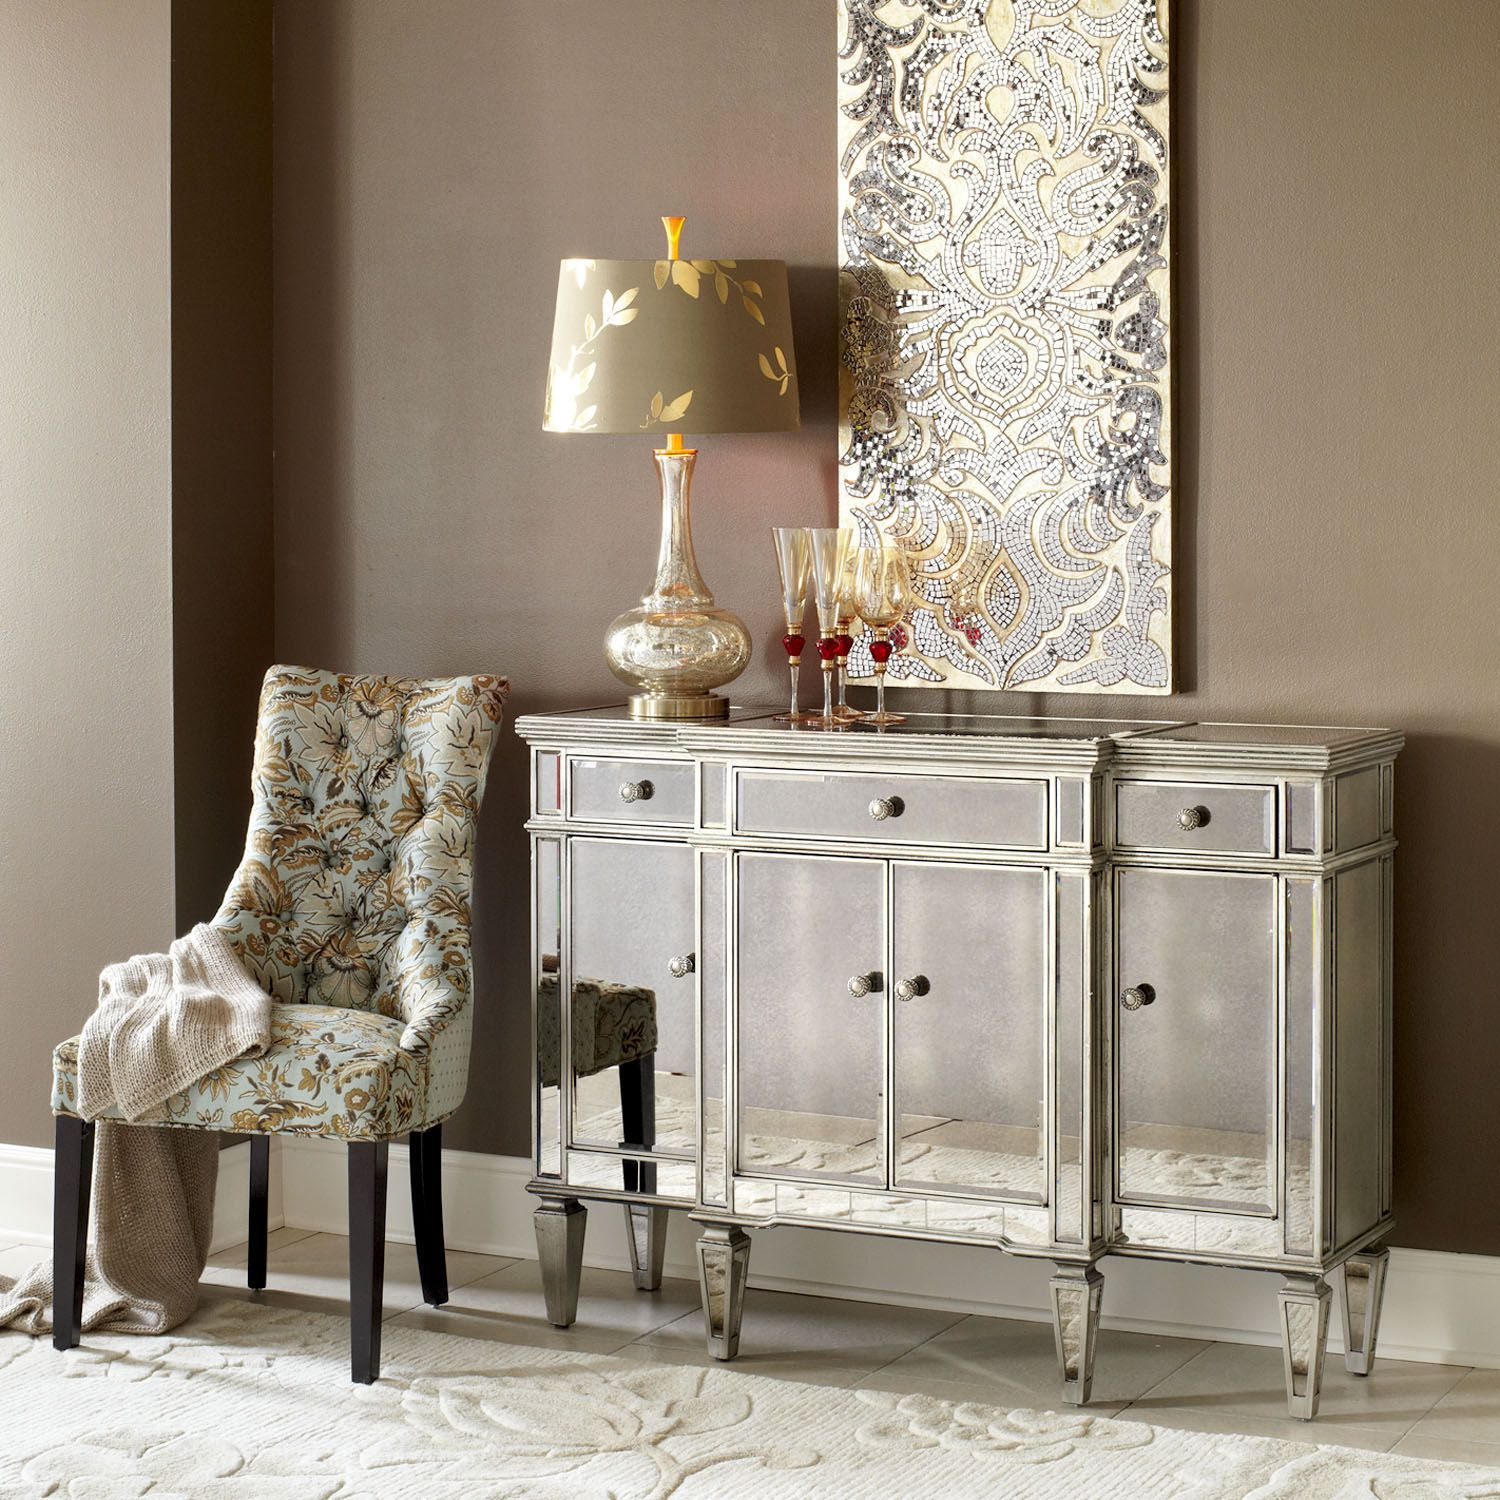 hayworth mirrored furniture. Hayworth Mirrored Buffet - Silver | Pier 1 Imports Furniture